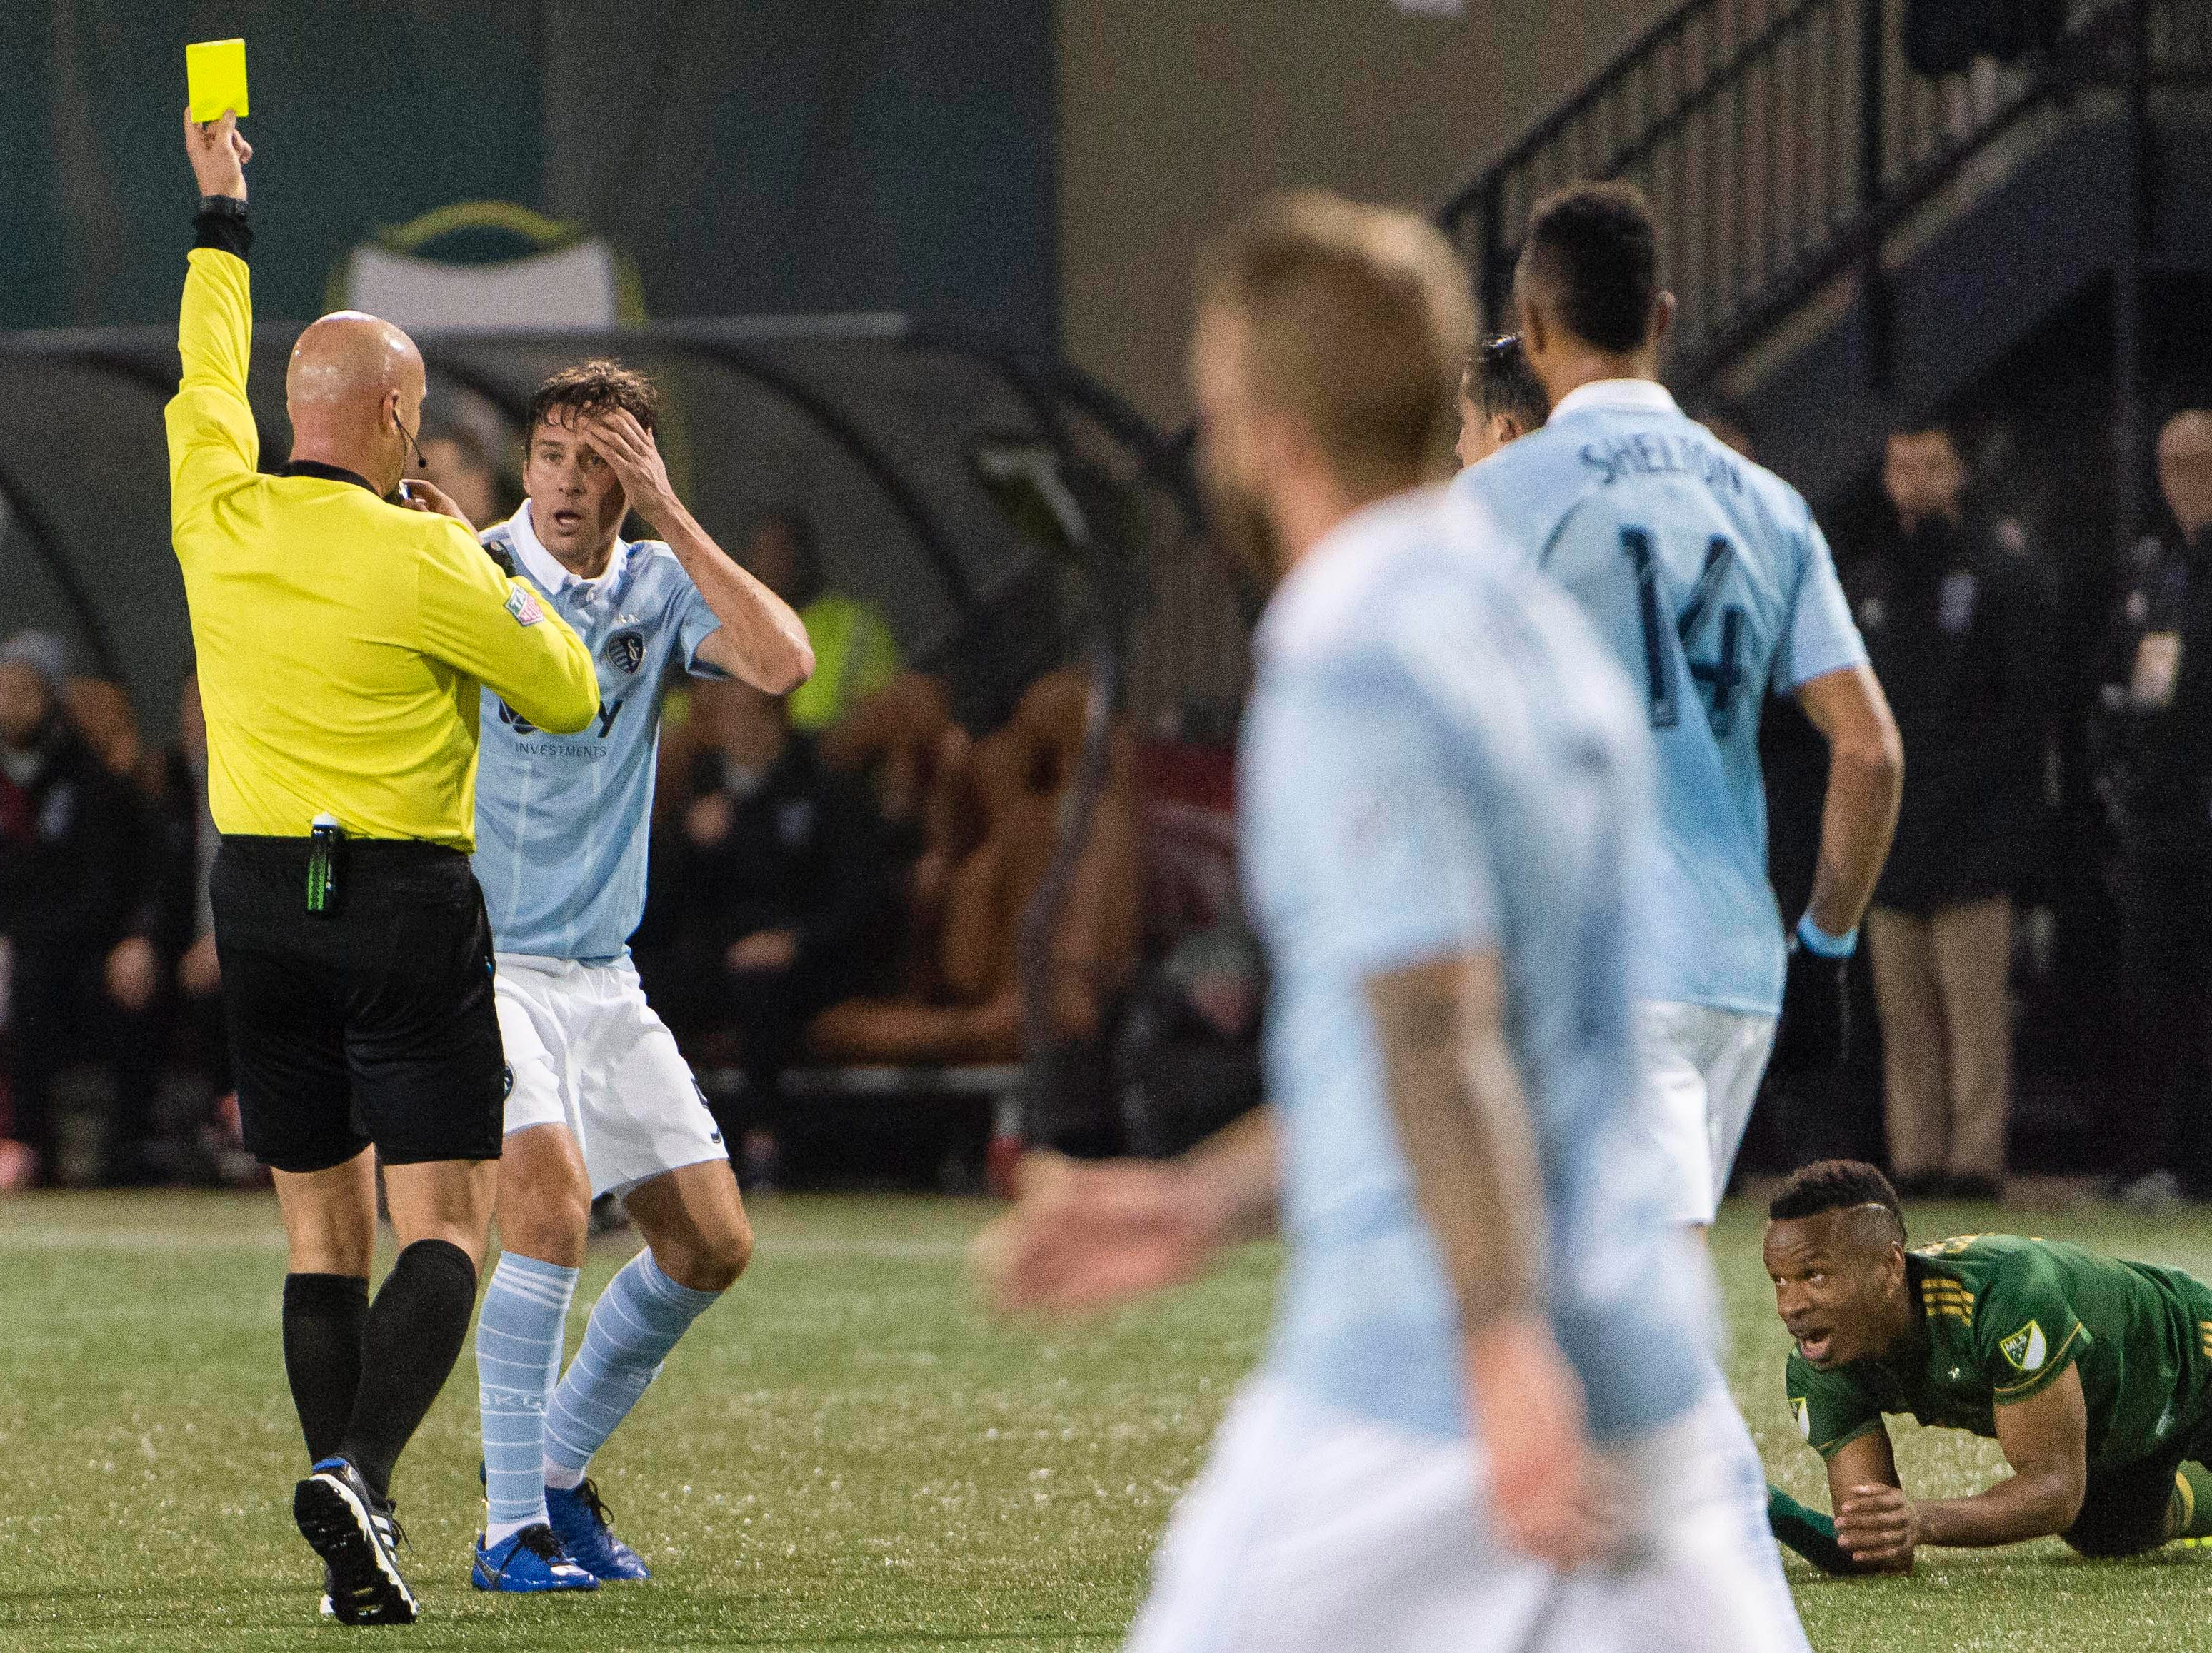 Nov 25, 2018; Portland, OR, USA; Sporting Kansas City defender Matt Besler (5) is given a yellow card during the second half after fouling Portland Timbers forward Jeremy Ebobisse (17) in the first leg of the MLS Western Conference Championship at Providence Park. The game ended tied 0-0. Mandatory Credit: Troy Wayrynen-USA TODAY Sports